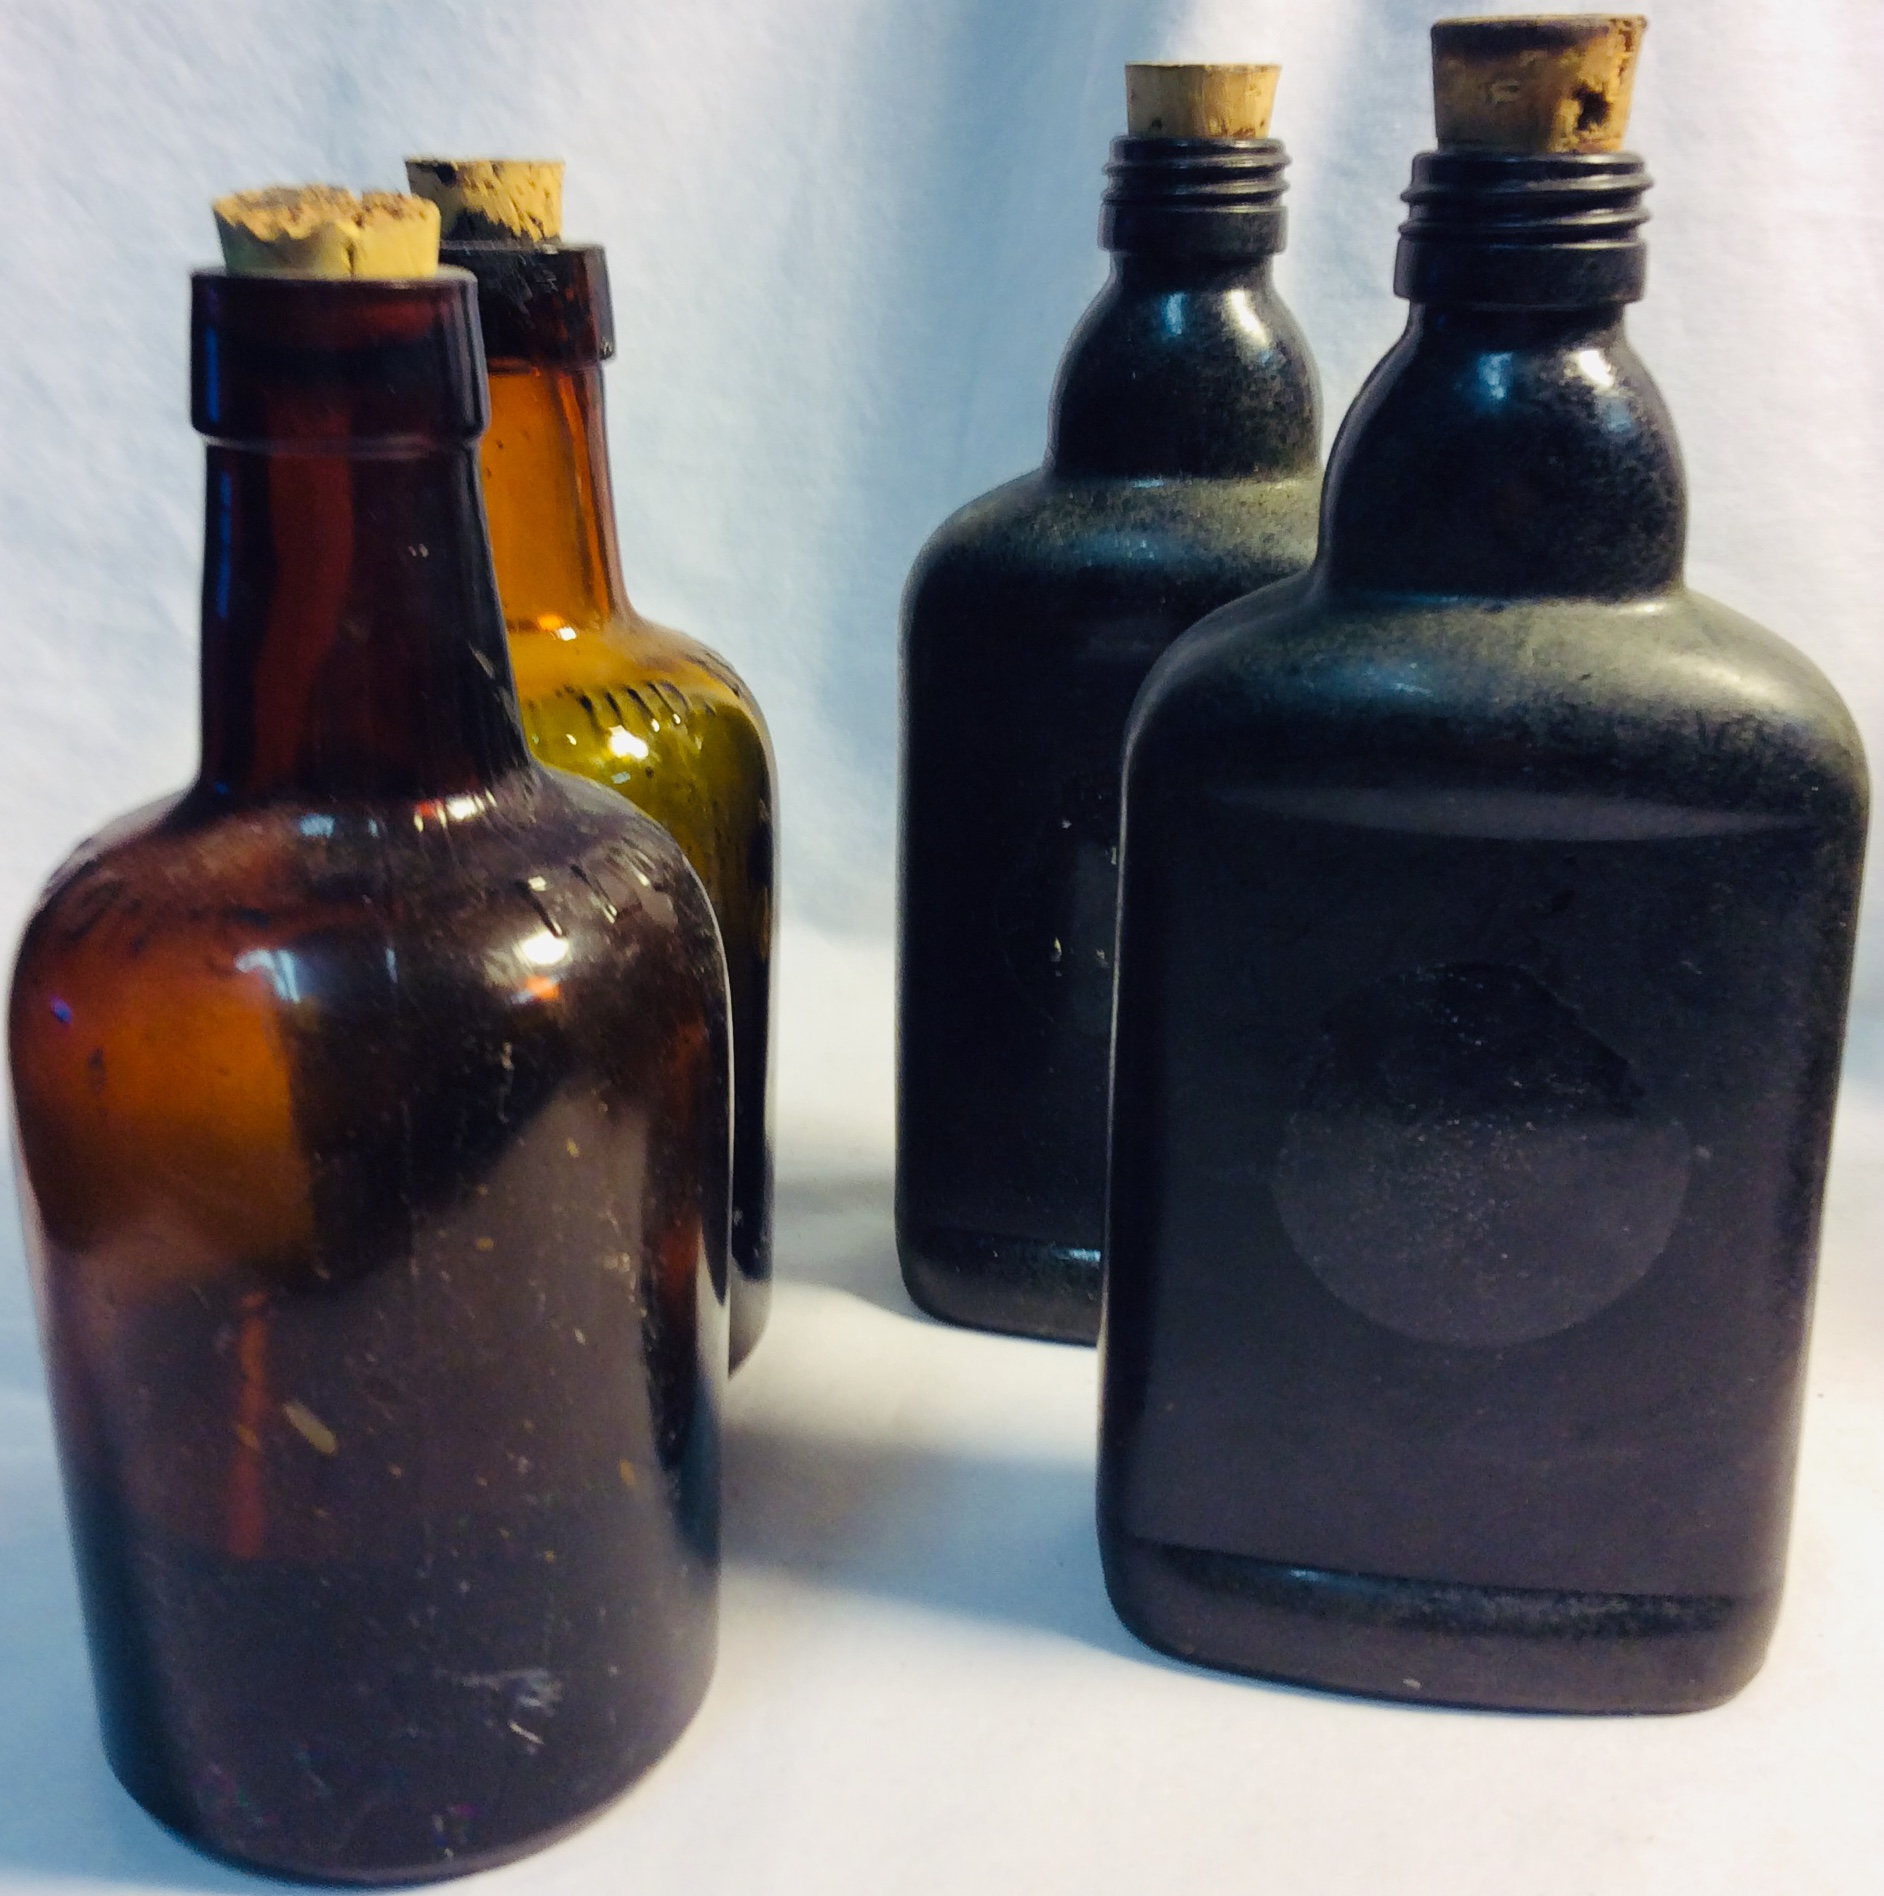 Antique brown glass bottles. x2 with dark liquid inside.